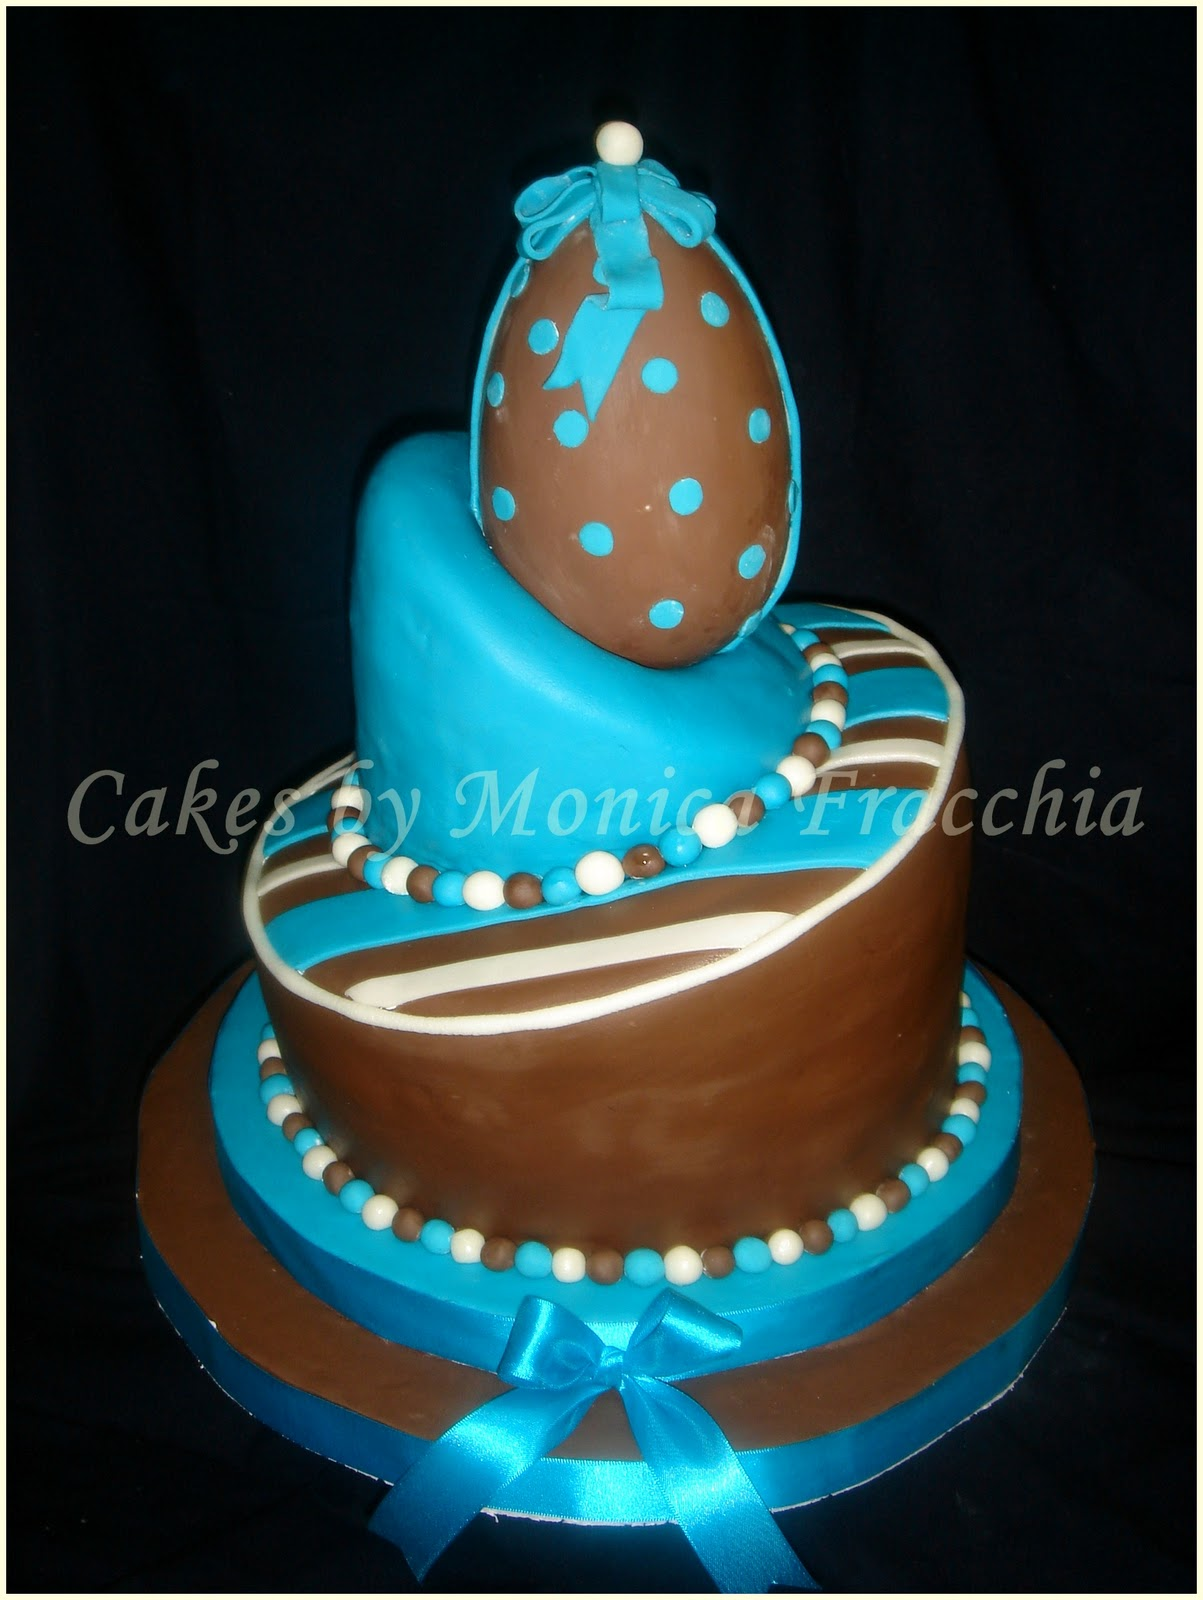 TORTA DECORADA PARA BABY SHOWER | TORTAS CAKES BY MONICA FRACCHIA